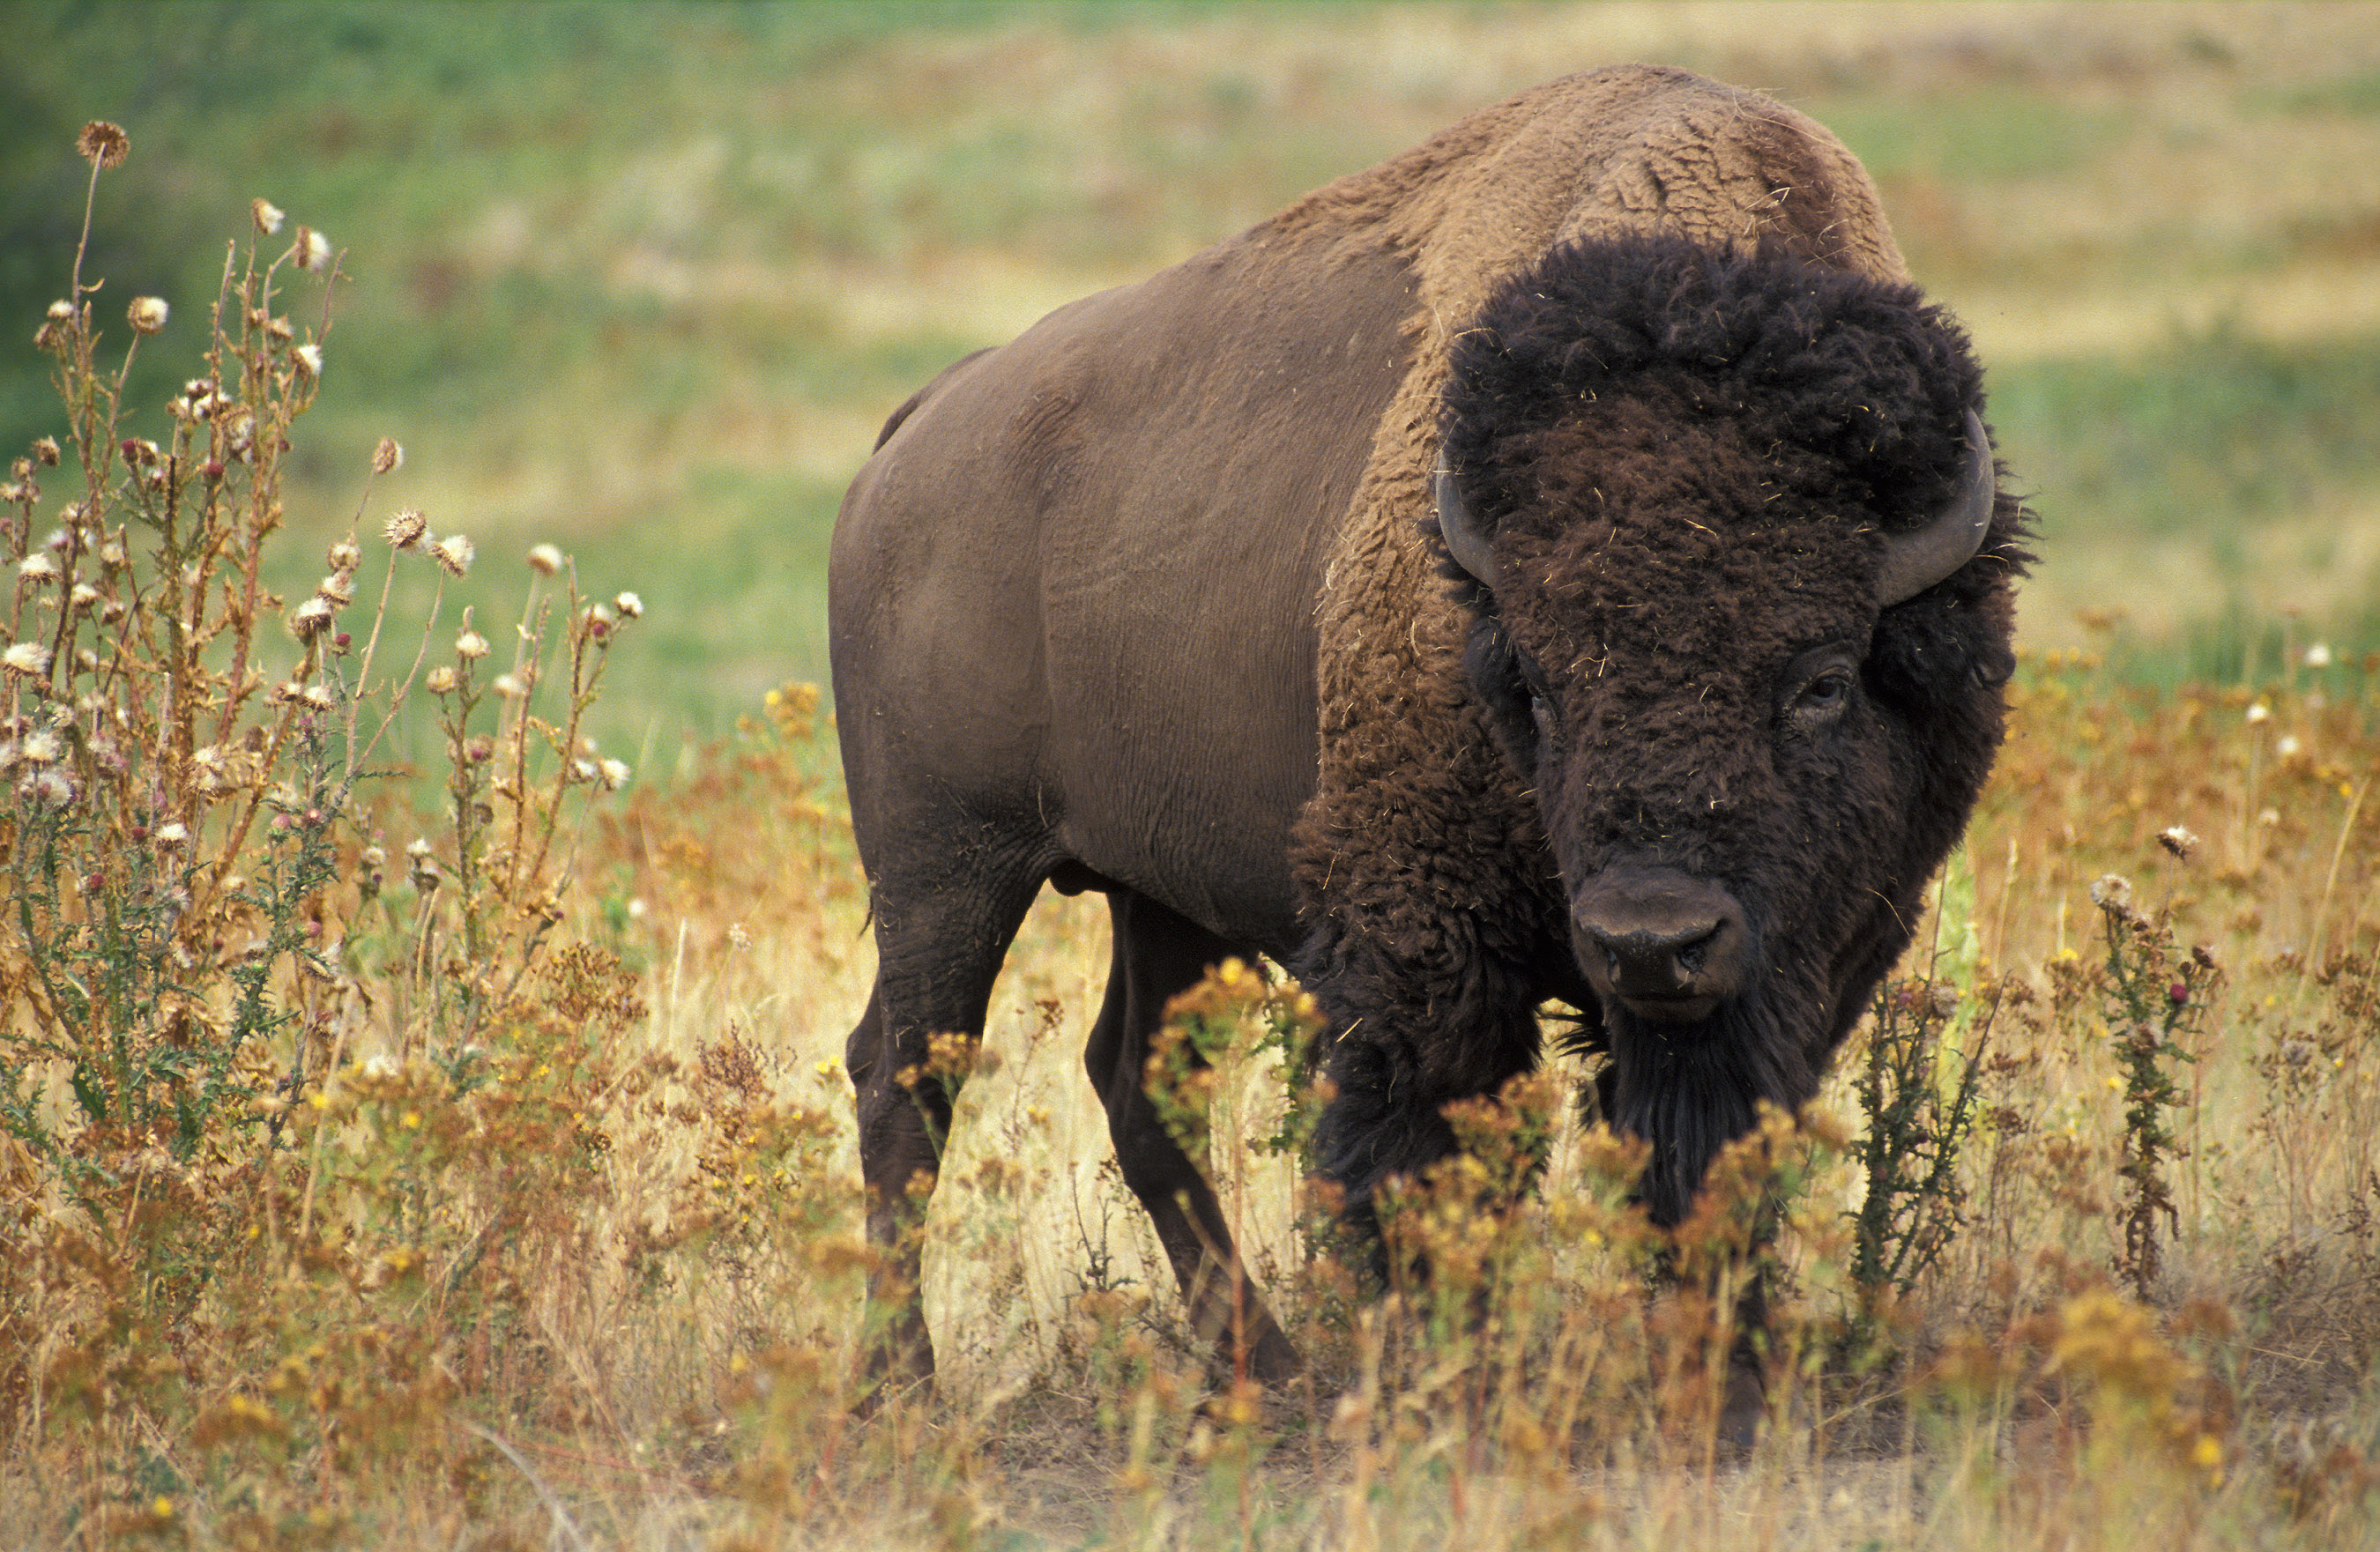 http://upload.wikimedia.org/wikipedia/commons/8/8d/American_bison_k5680-1.jpg